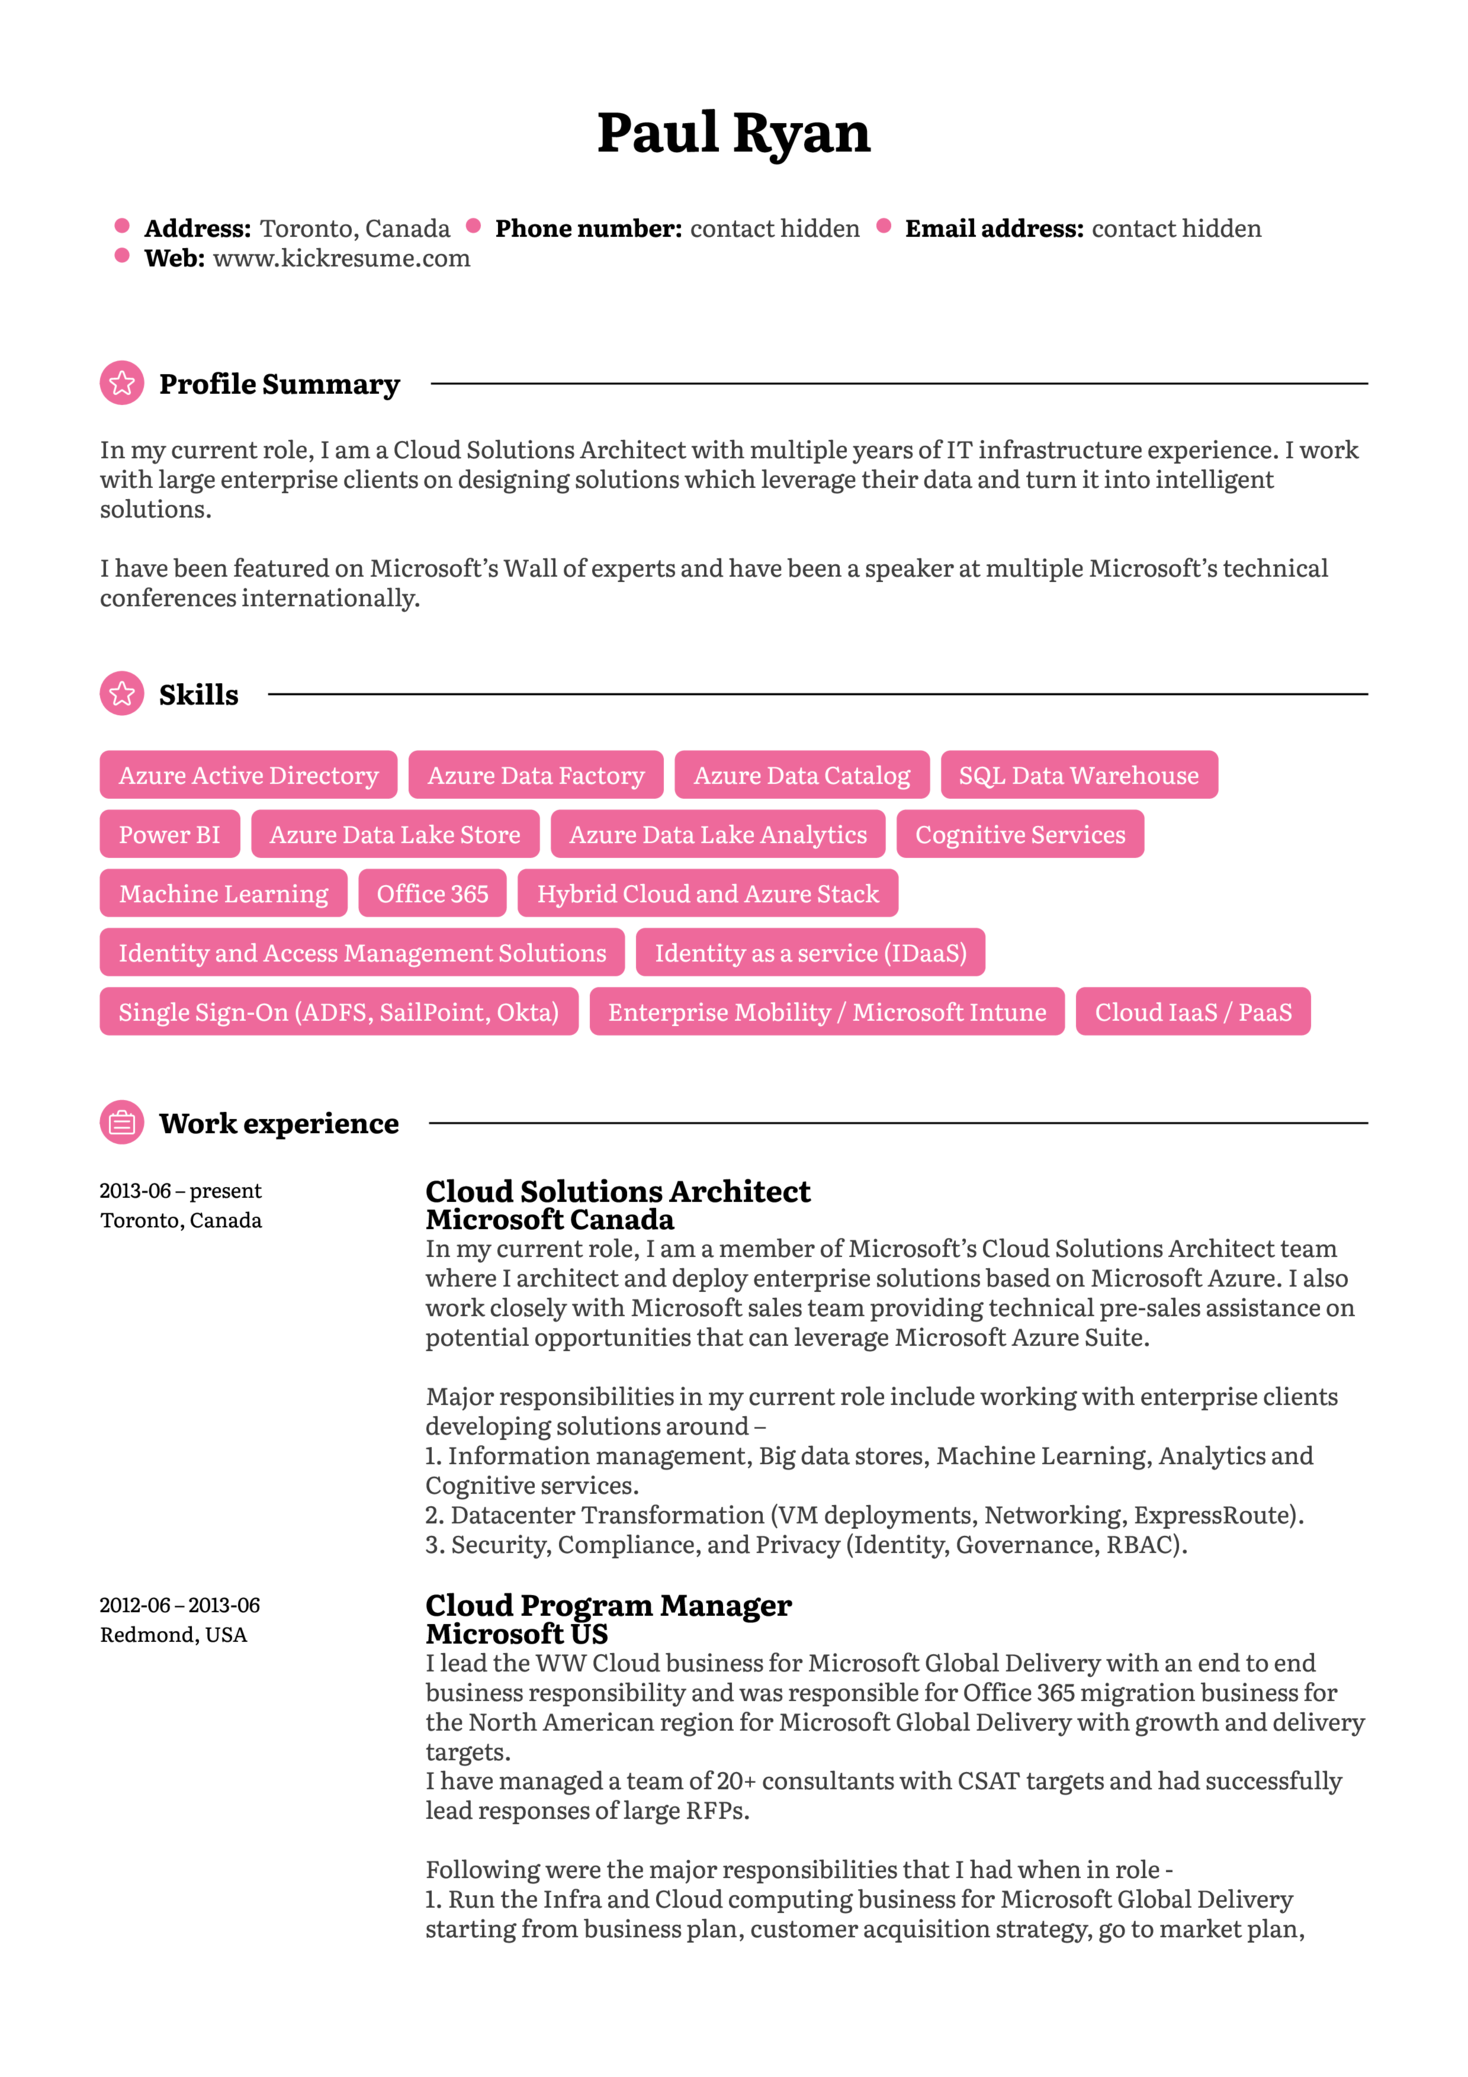 resume examples by real people  microsoft cloud program manager resume template